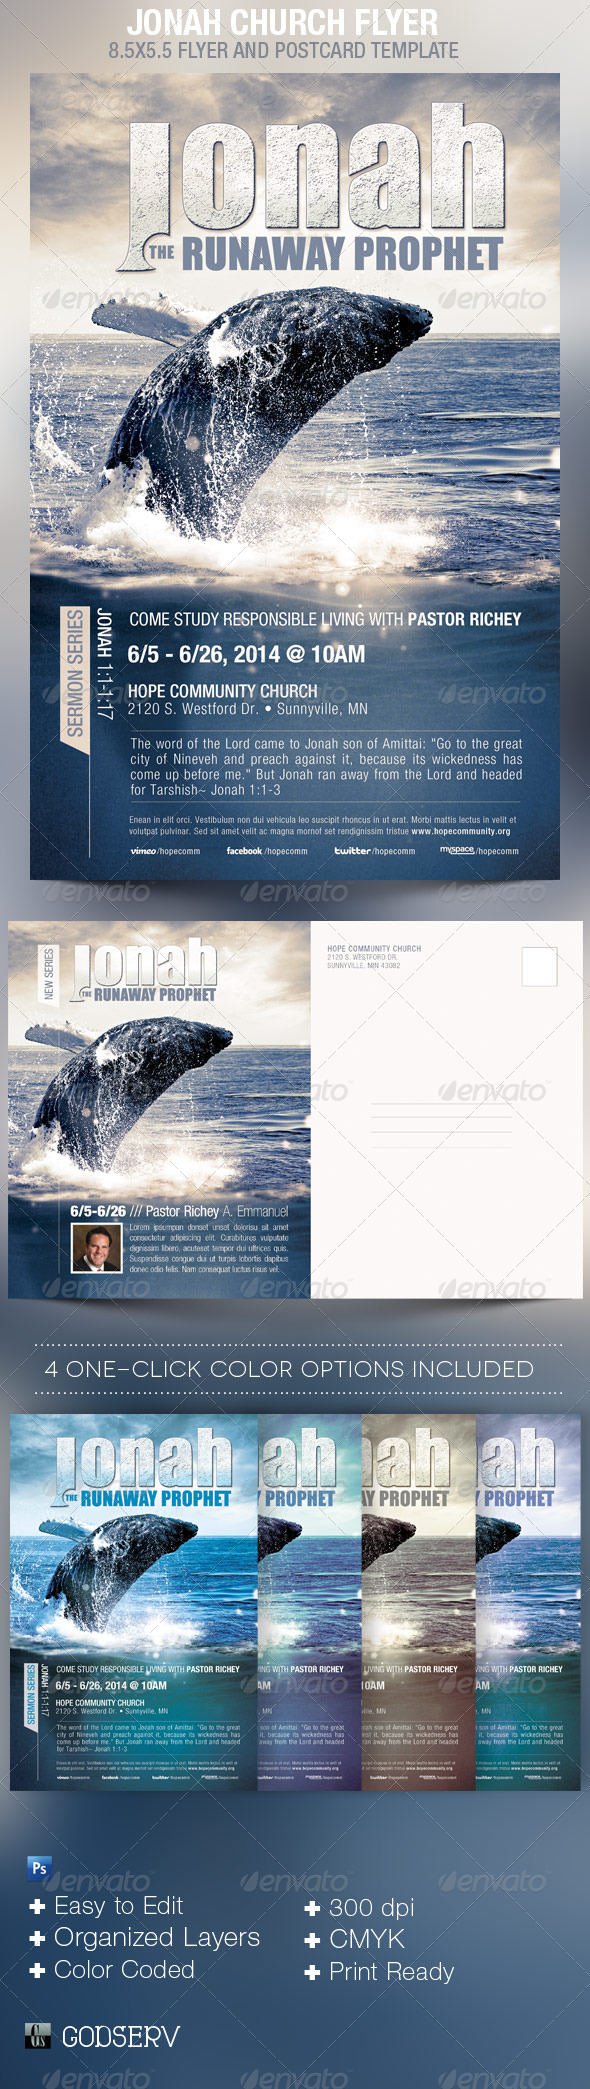 Jonah Church Flyer Template - Church Flyers